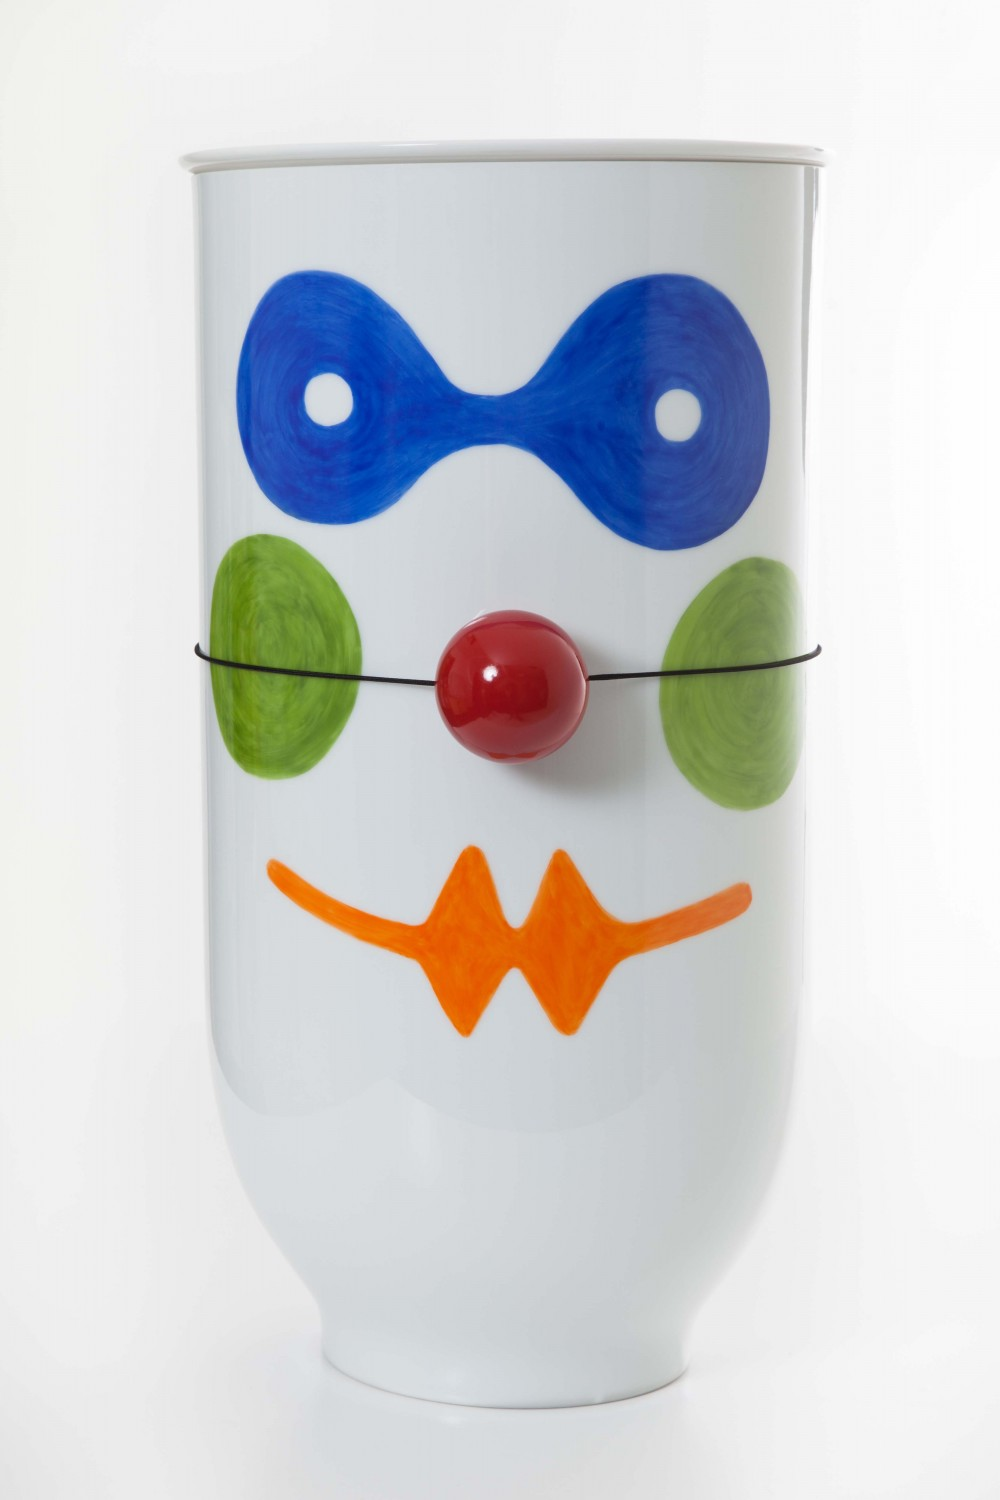 Marbles & Clowns - © Pierre Charpin